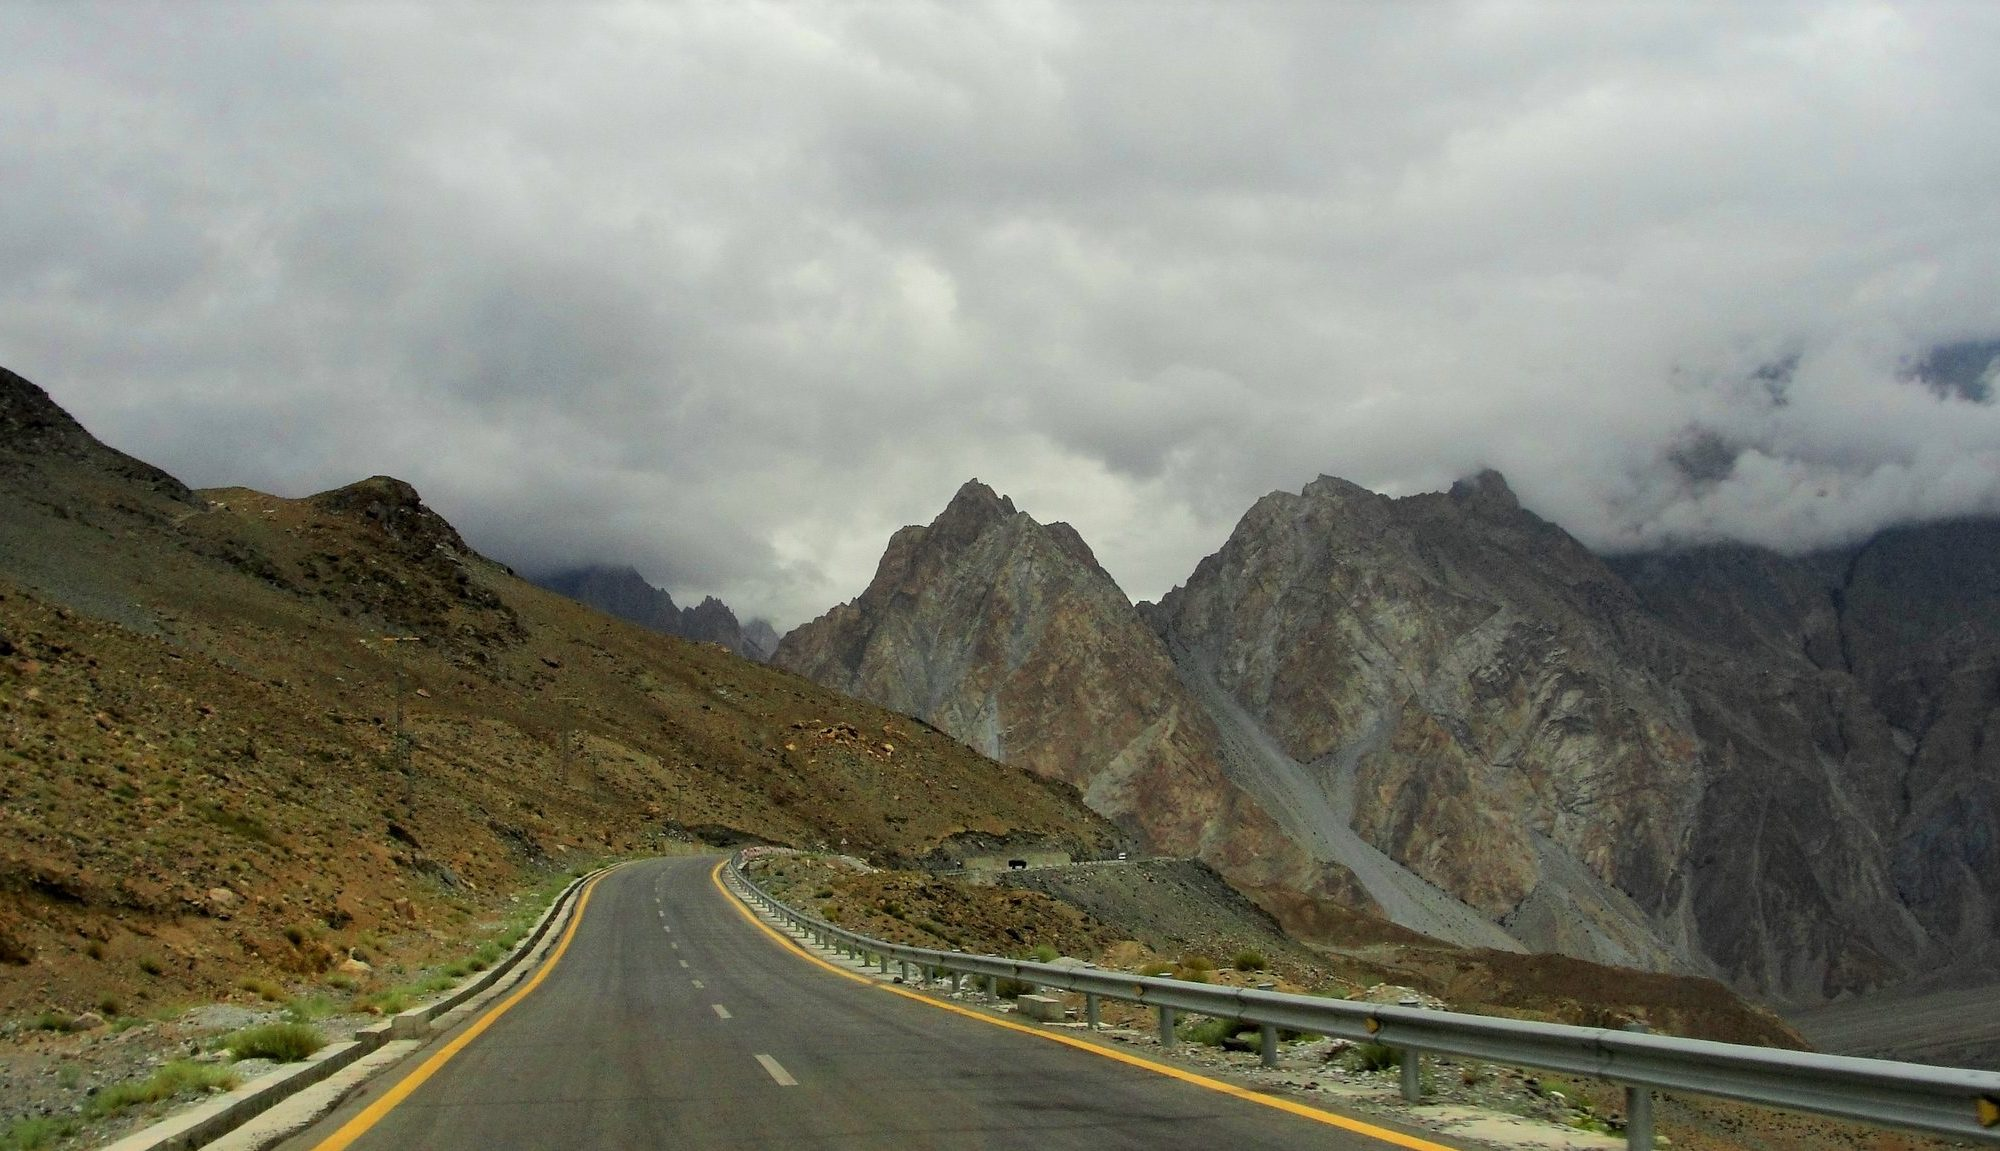 Image of mountainous backdrop, with winding road extending into the distance